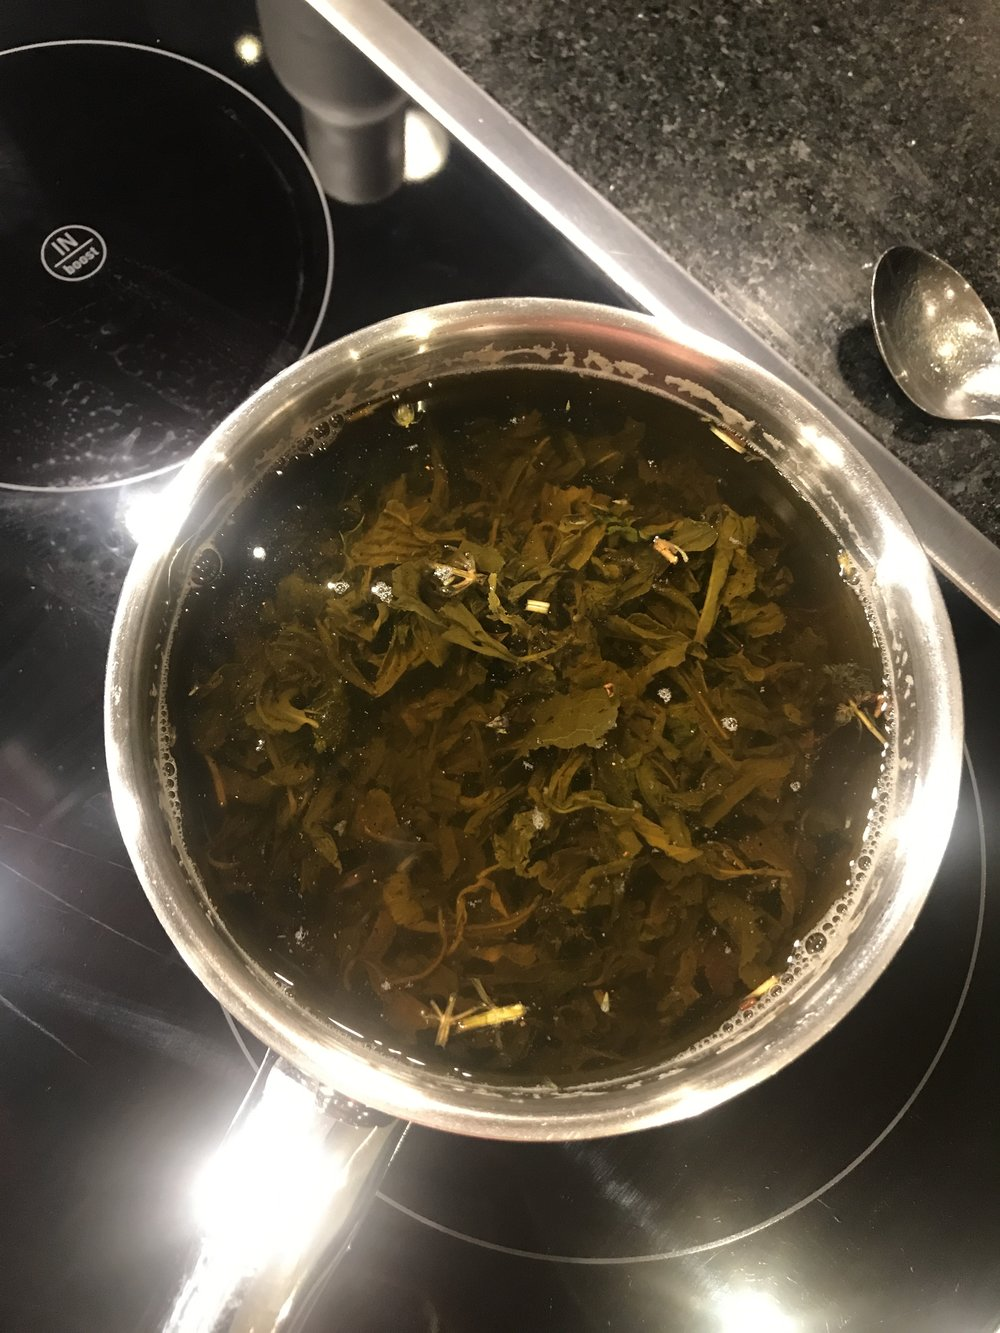 Steeping in a Pot